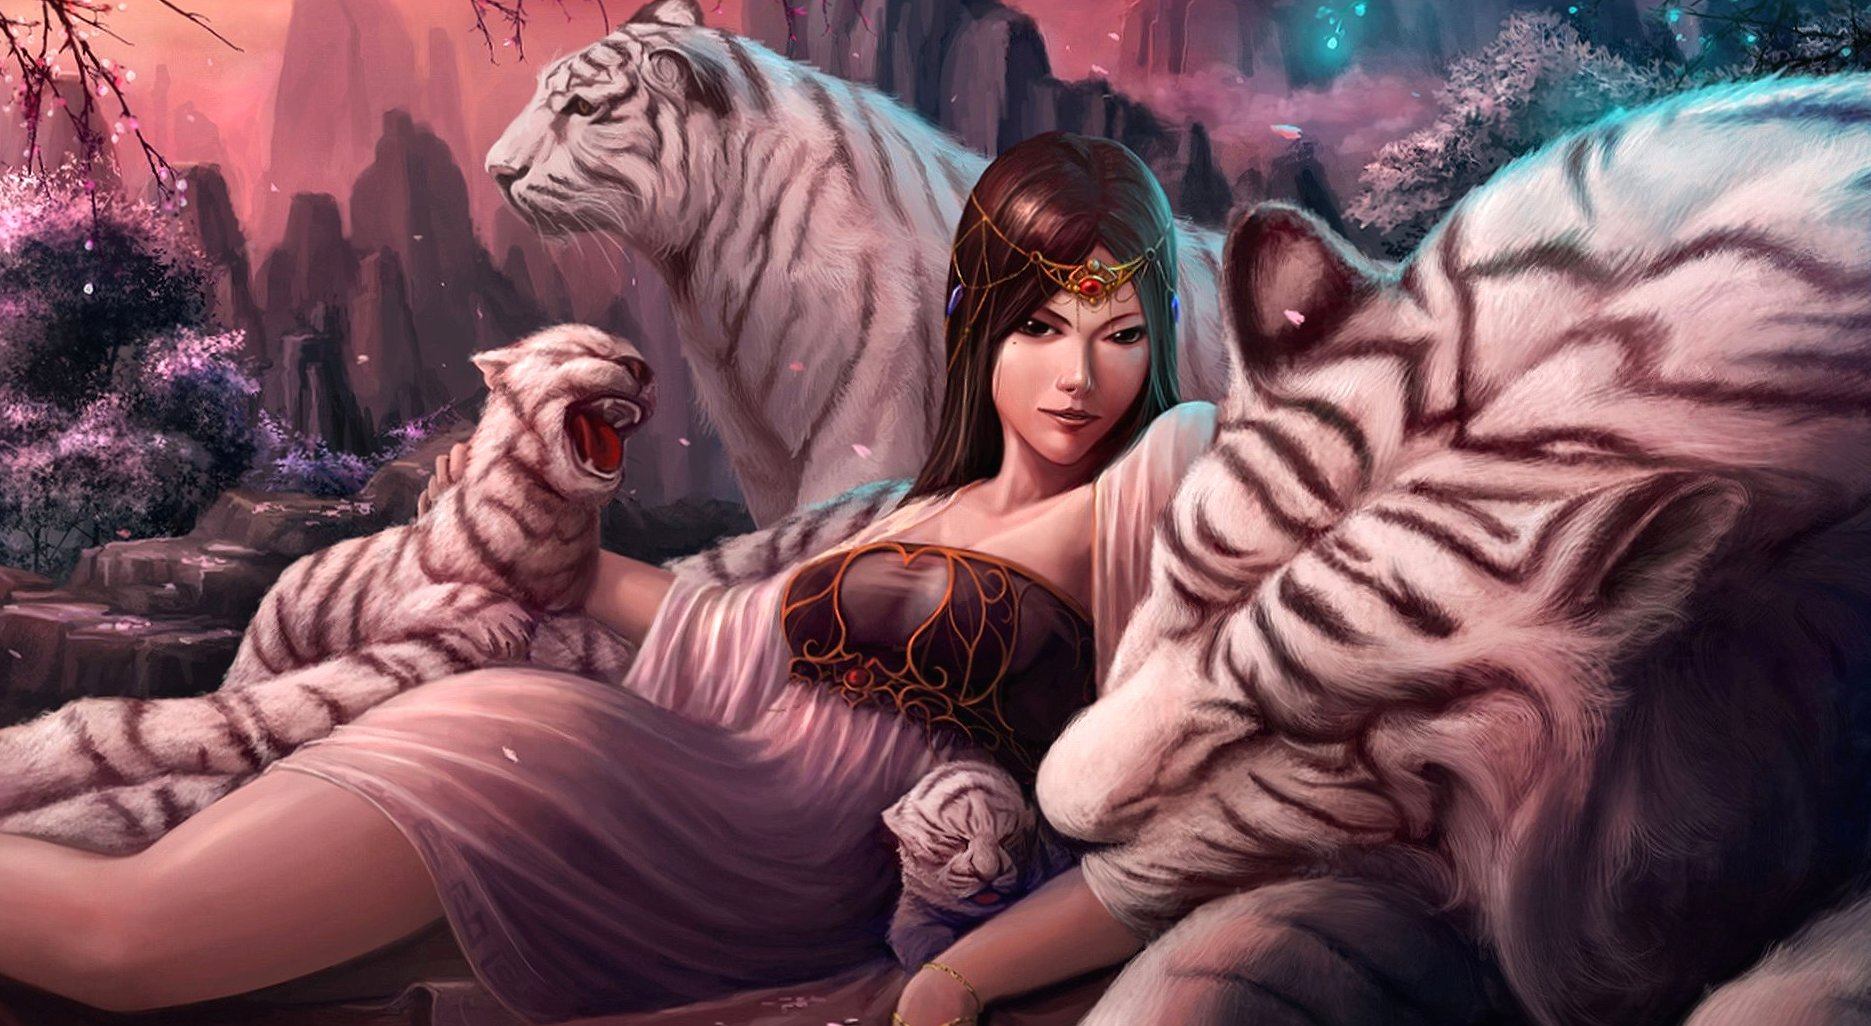 Tigers queen fantasy wallpapers HD quality